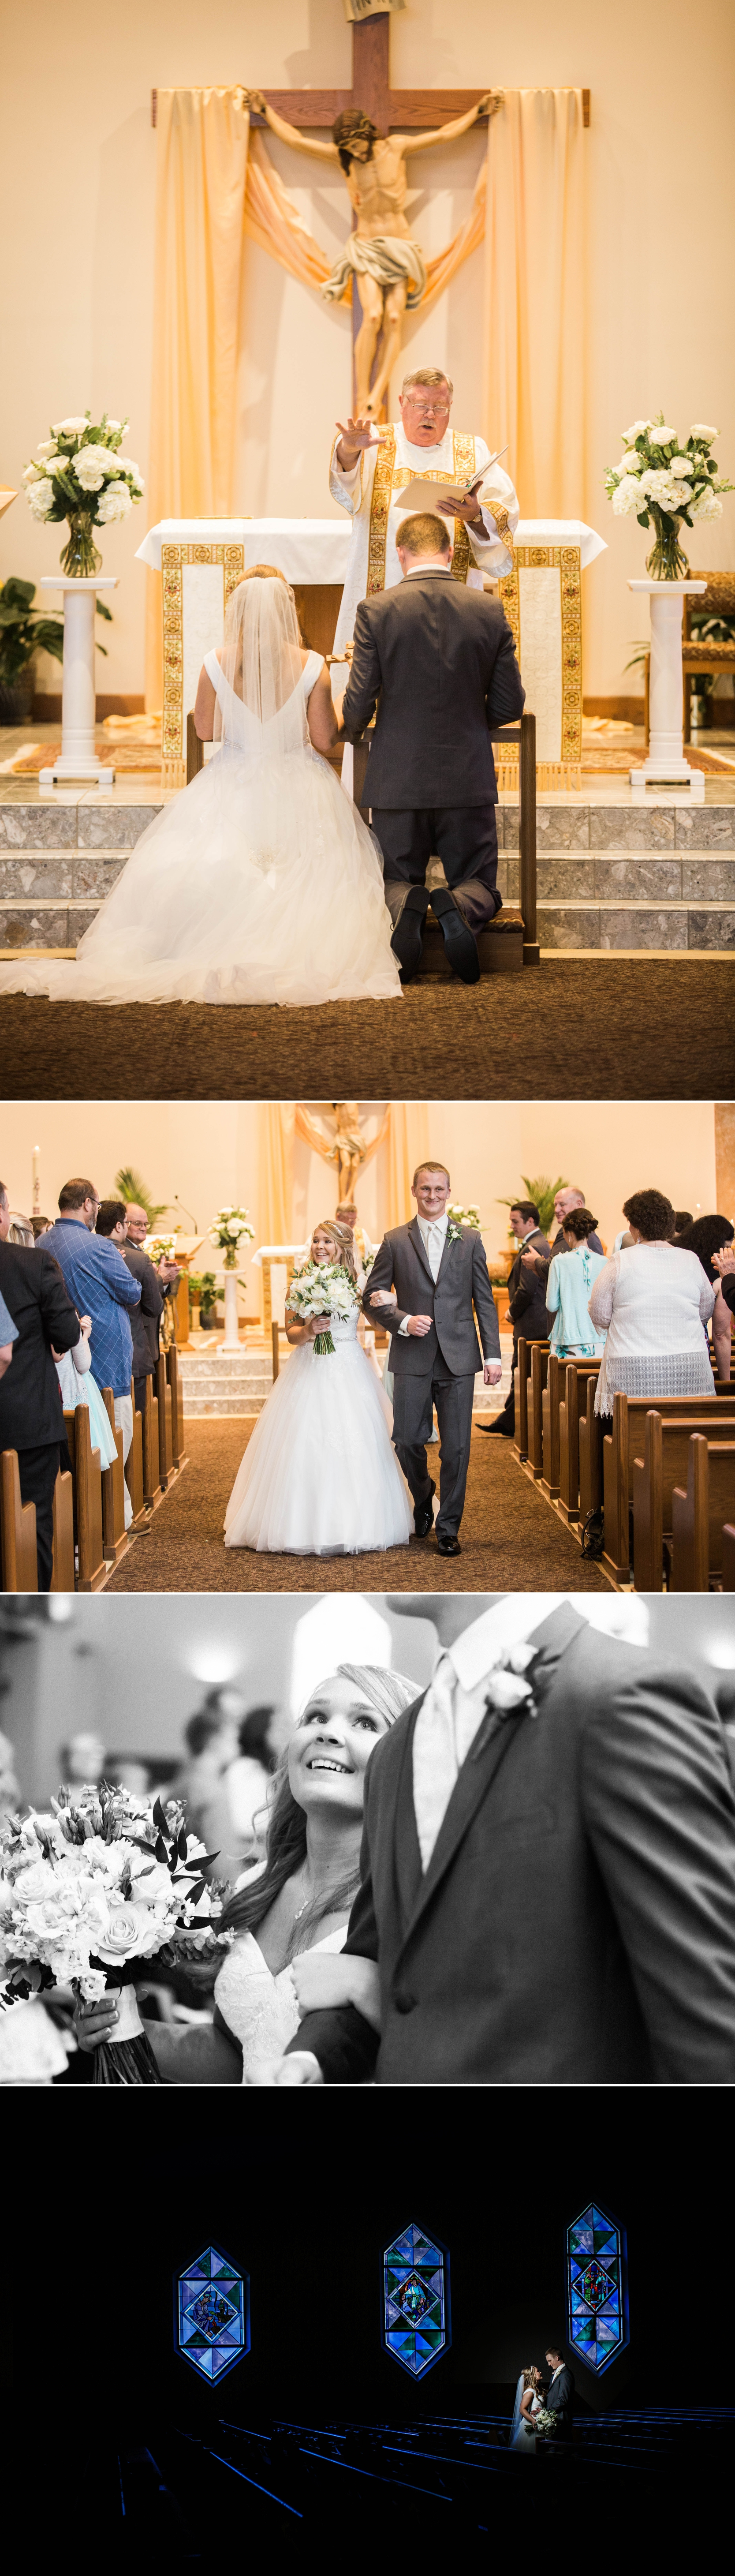 ceremony - wedding - church - bride - groom